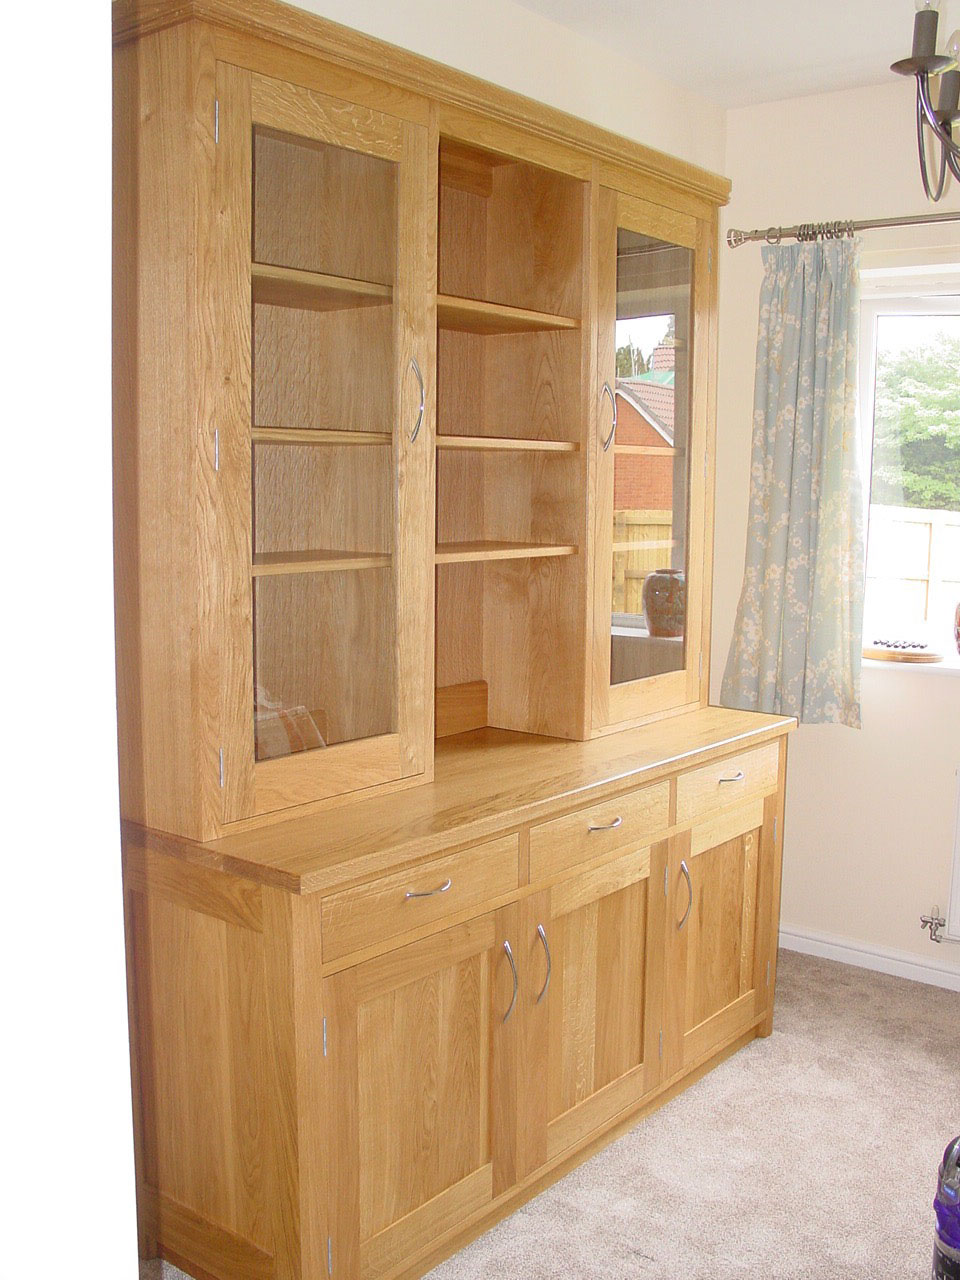 Glazed Oak Dresser